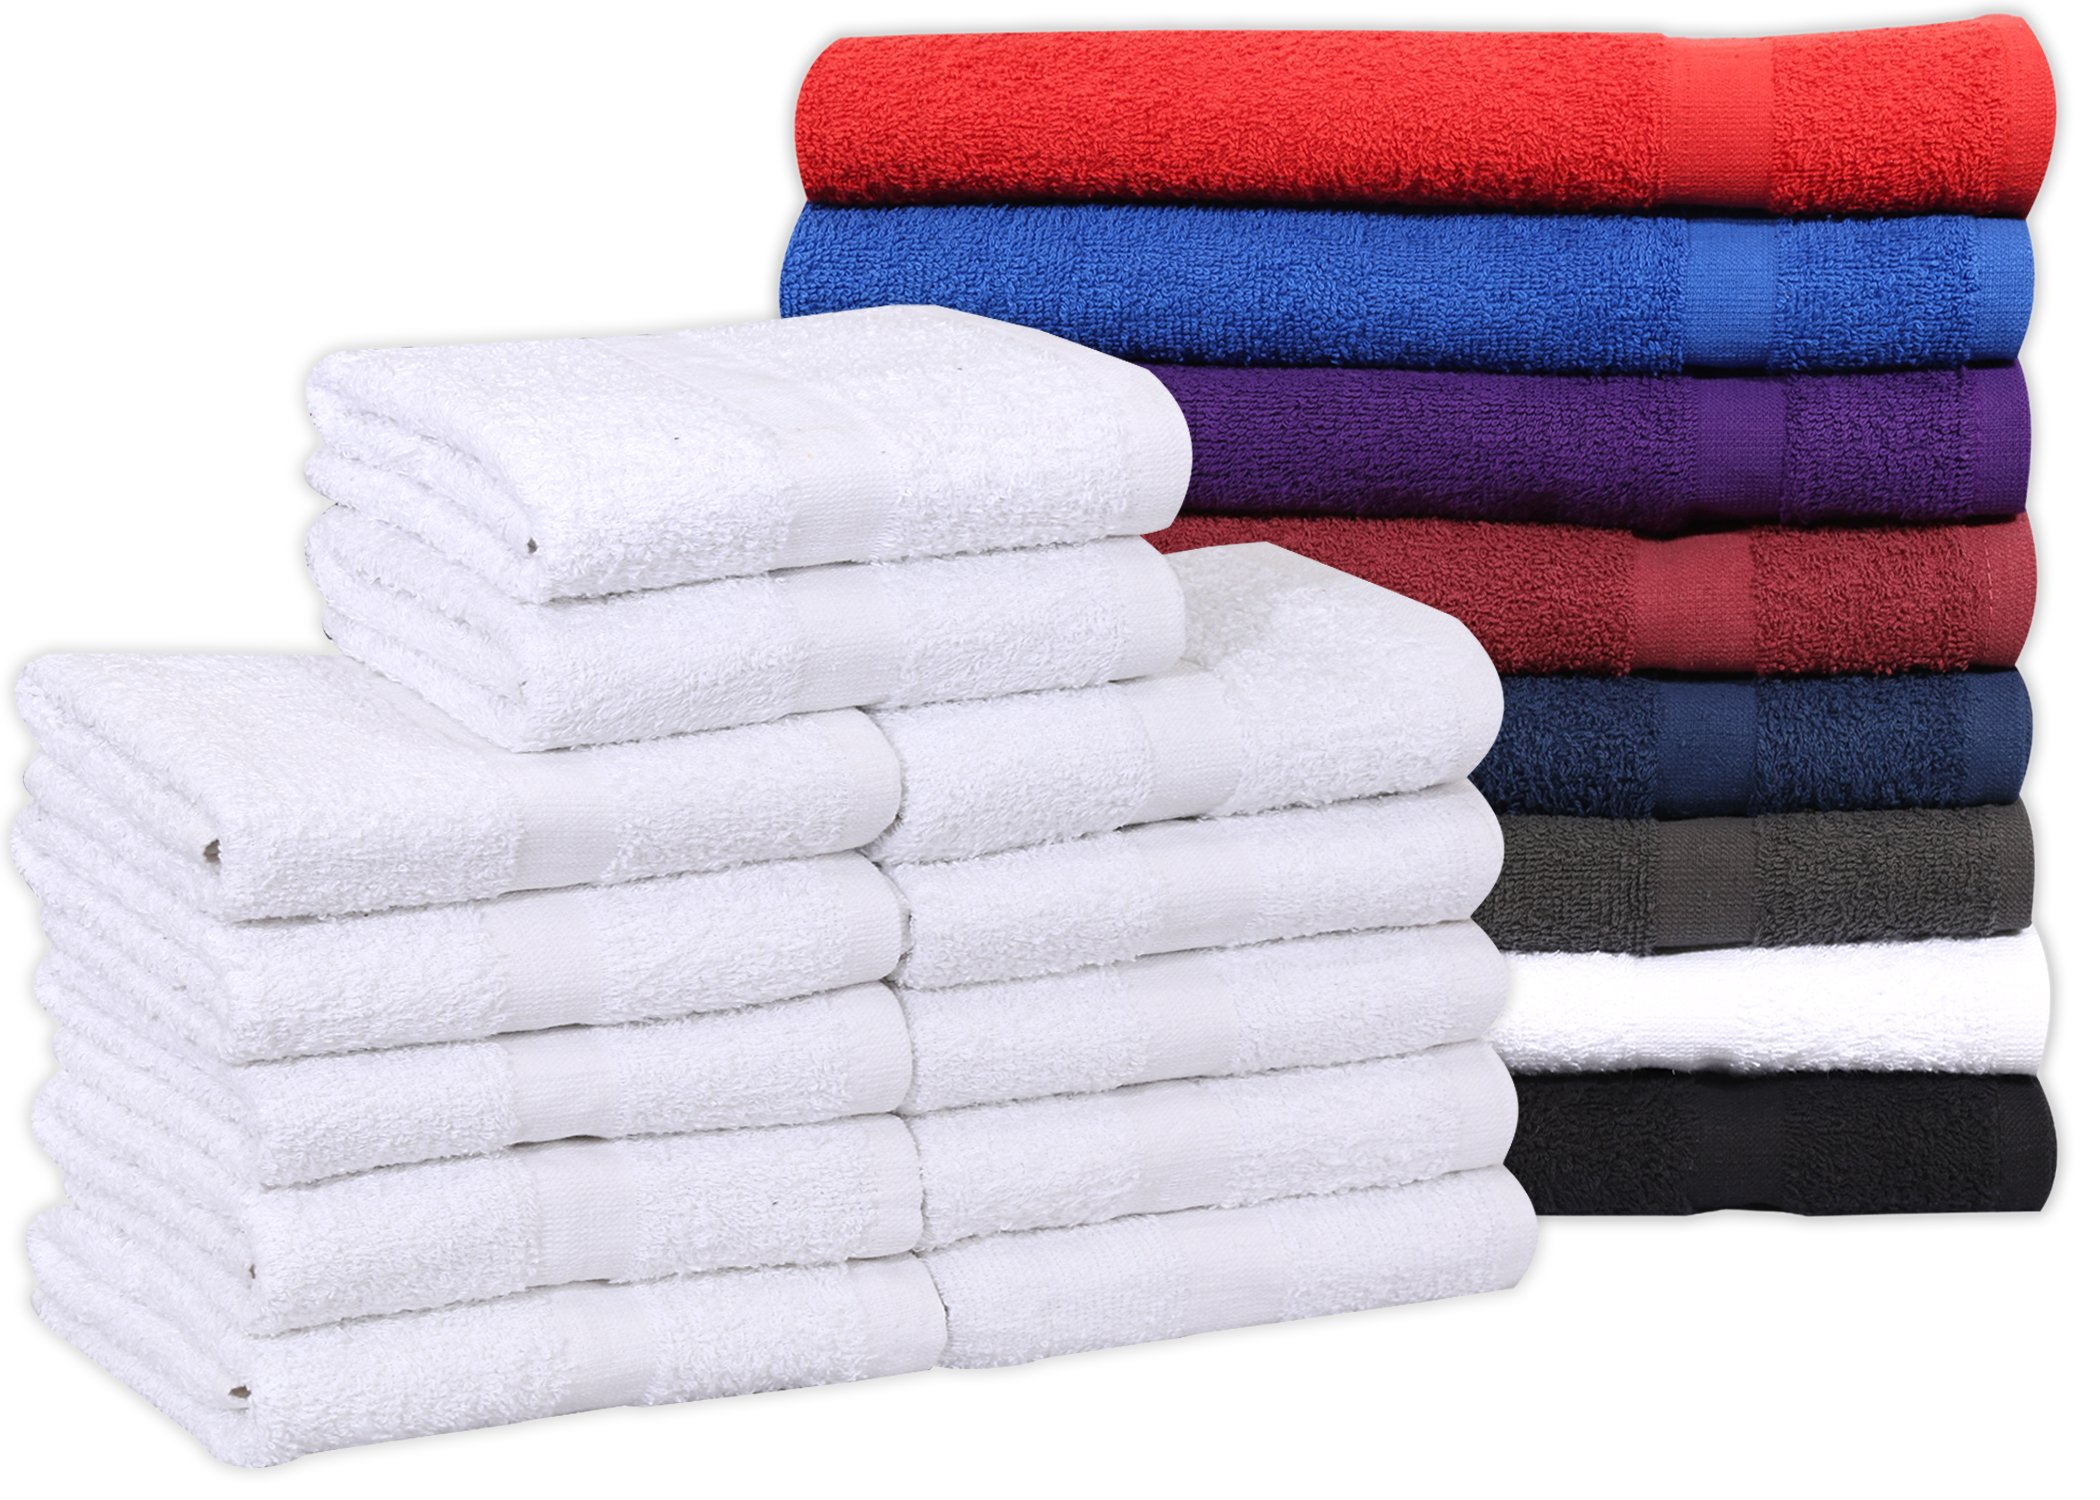 Cotton Salon Towels (12-Pack, White,16x27 inches) - Soft Absorbant Quick Dry Gym-Salon-Spa Hand Towel (White) (100%